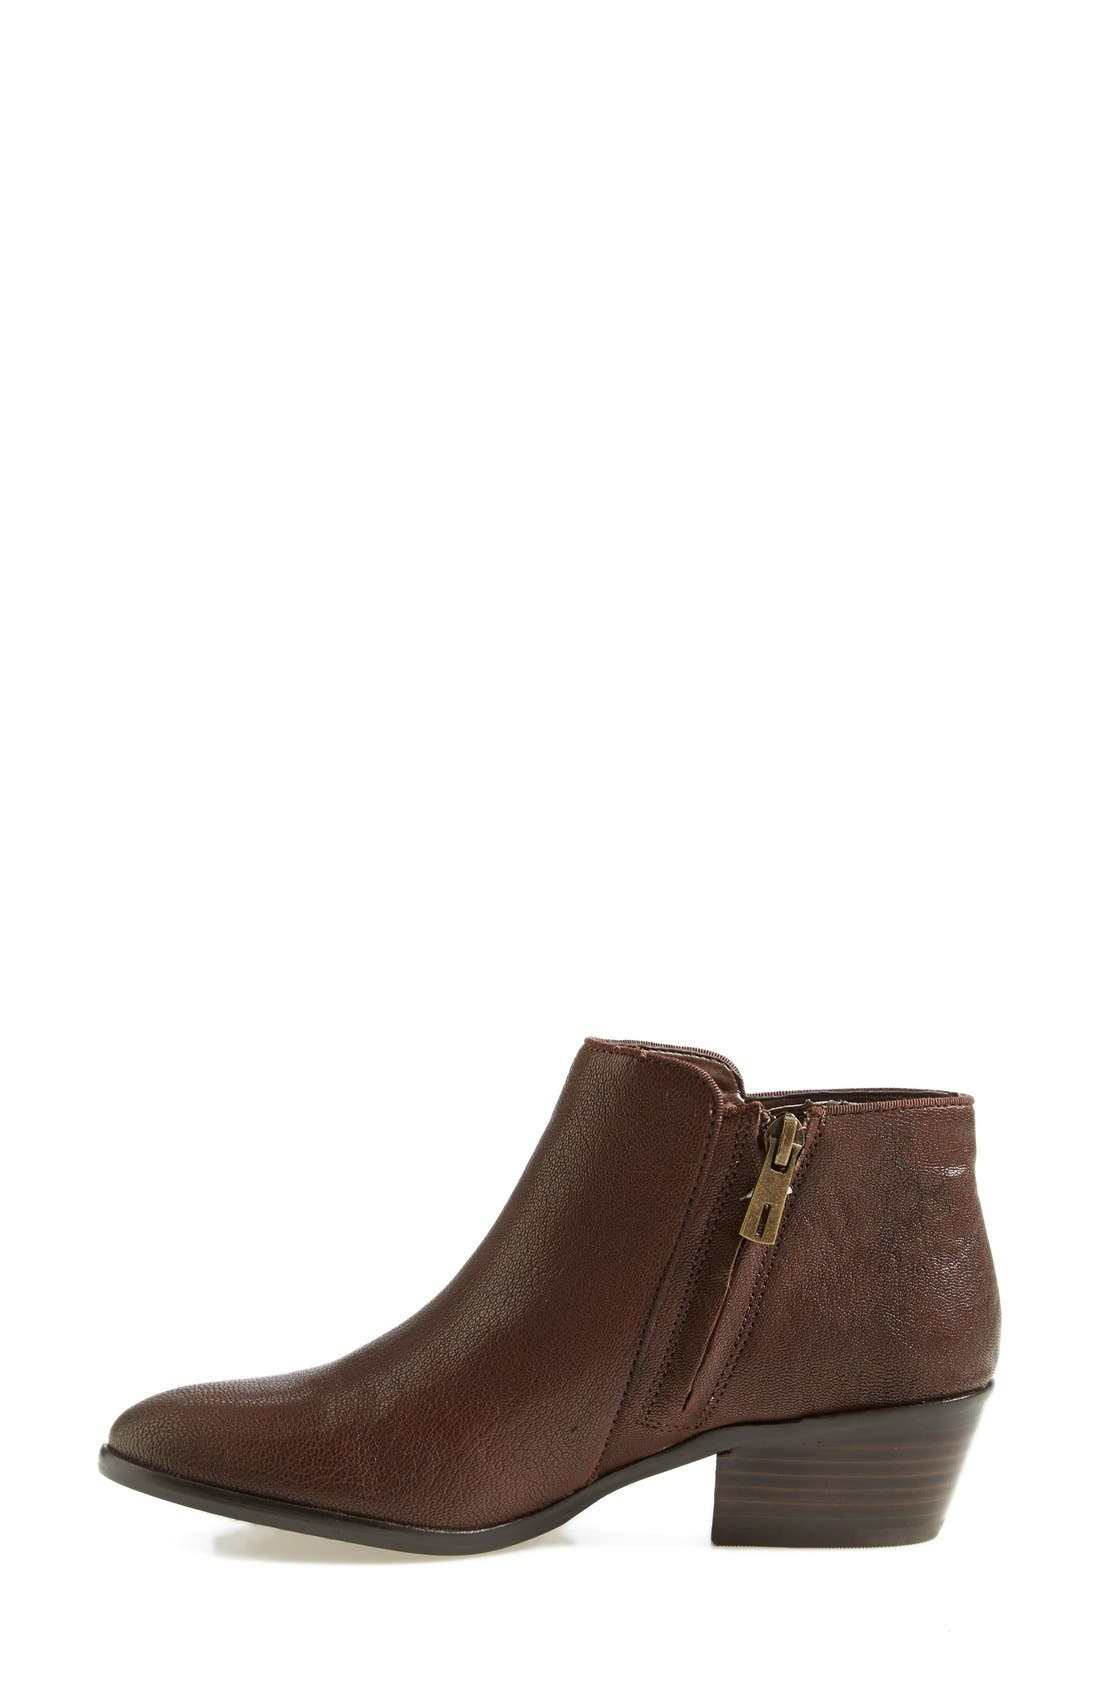 ,                             'Petty' Chelsea Boot,                             Alternate thumbnail 92, color,                             230